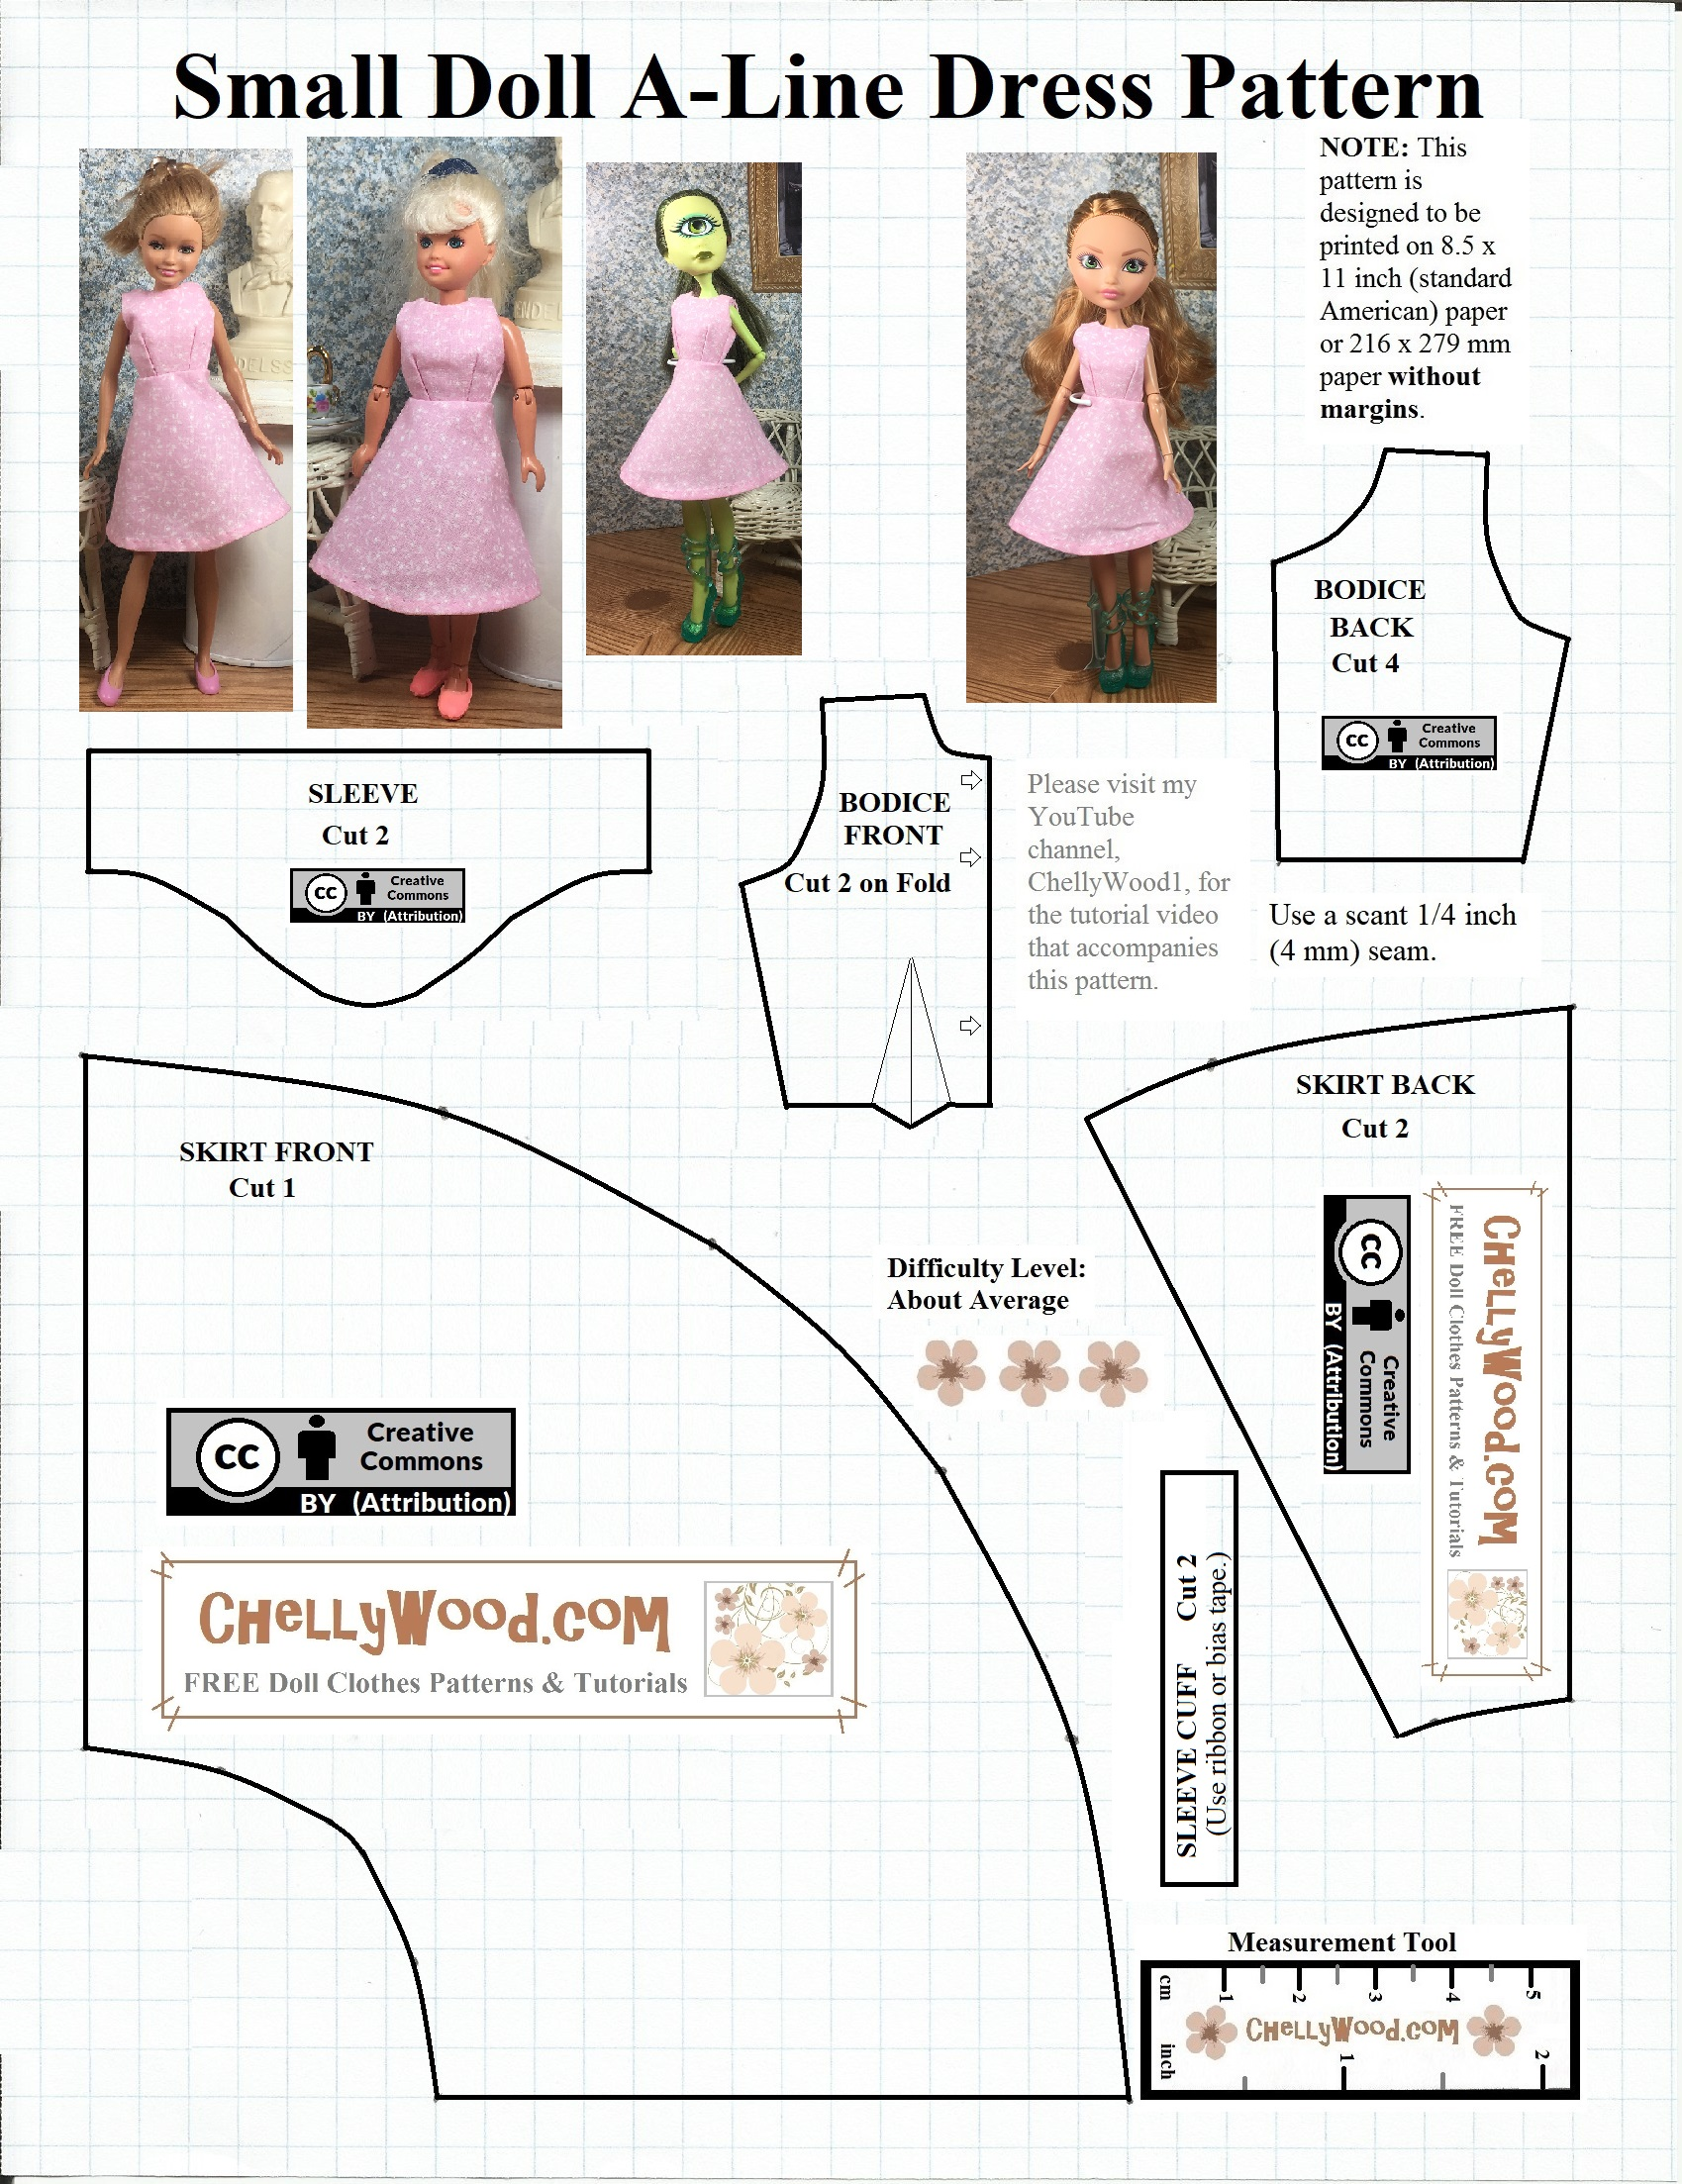 FREE printable #sewing pattern for small #dolls – Free, printable